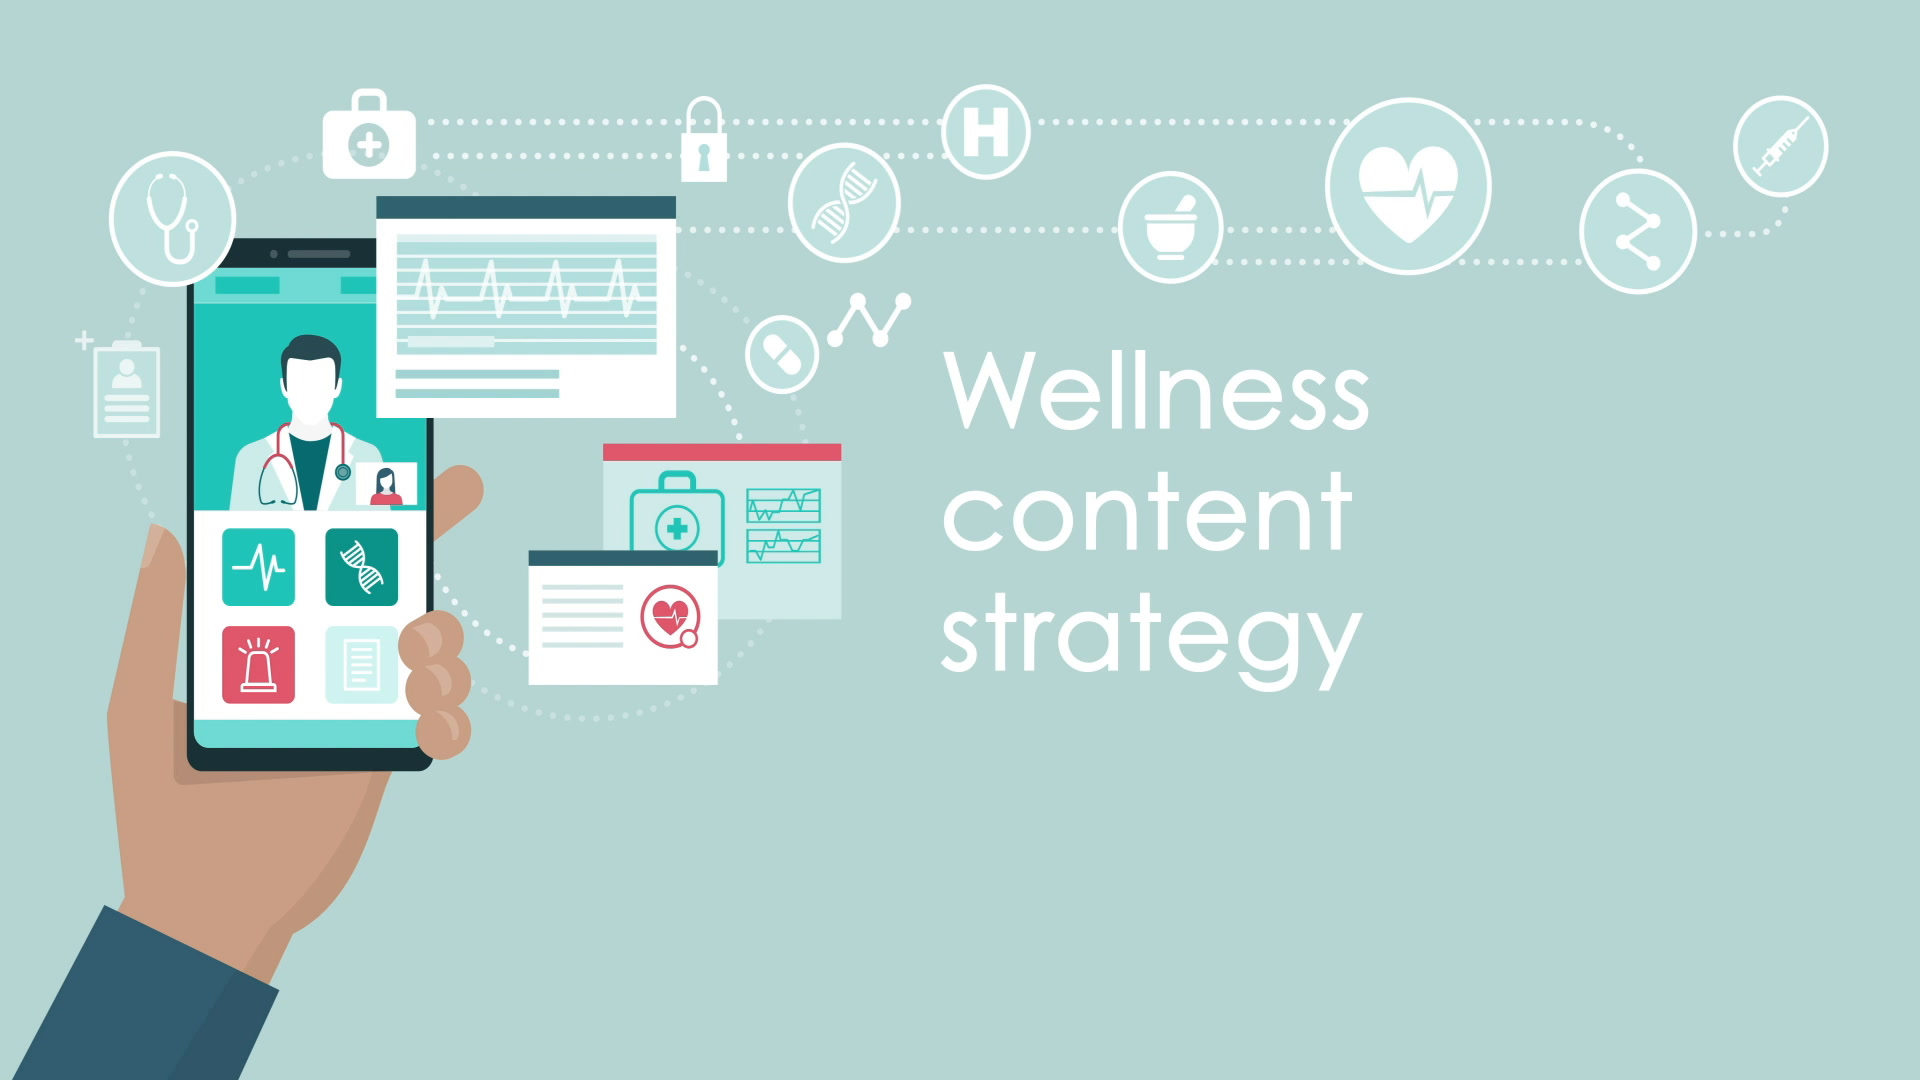 wellness content strategy